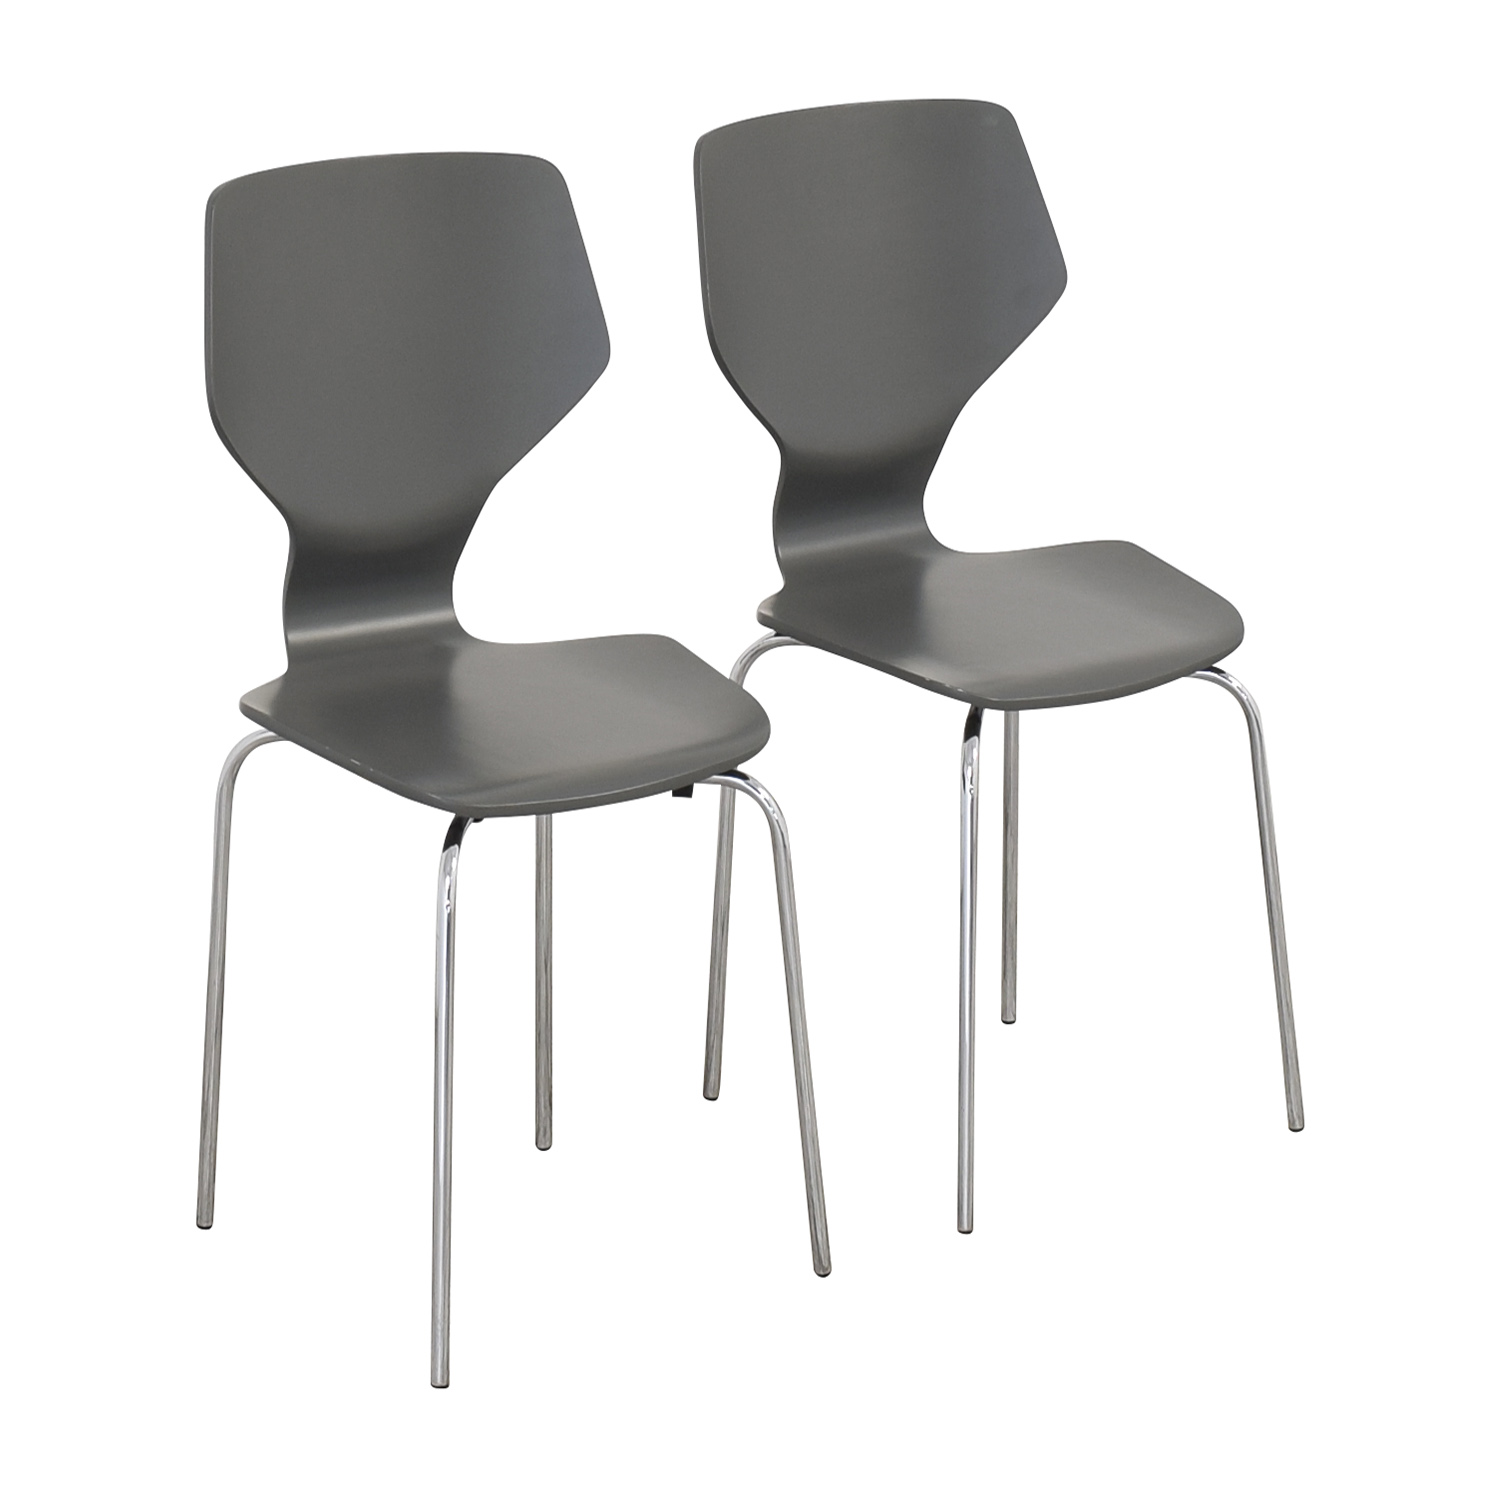 Room & Board Room & Board Modern Pike Side Chairs ma